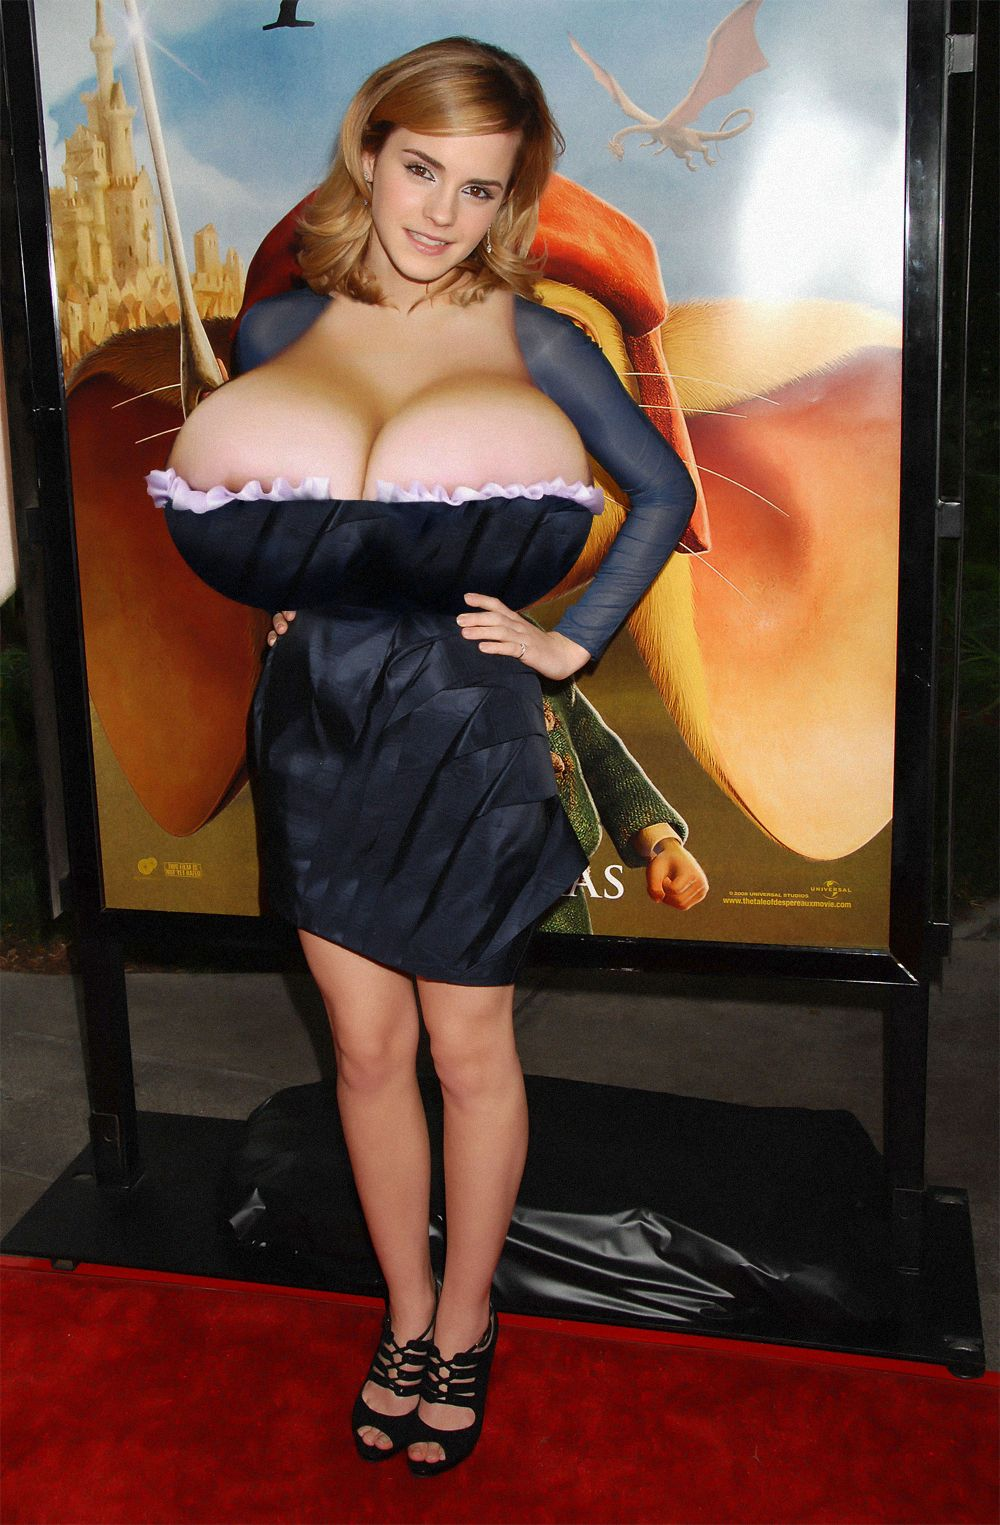 The expert, Celebity large breasts